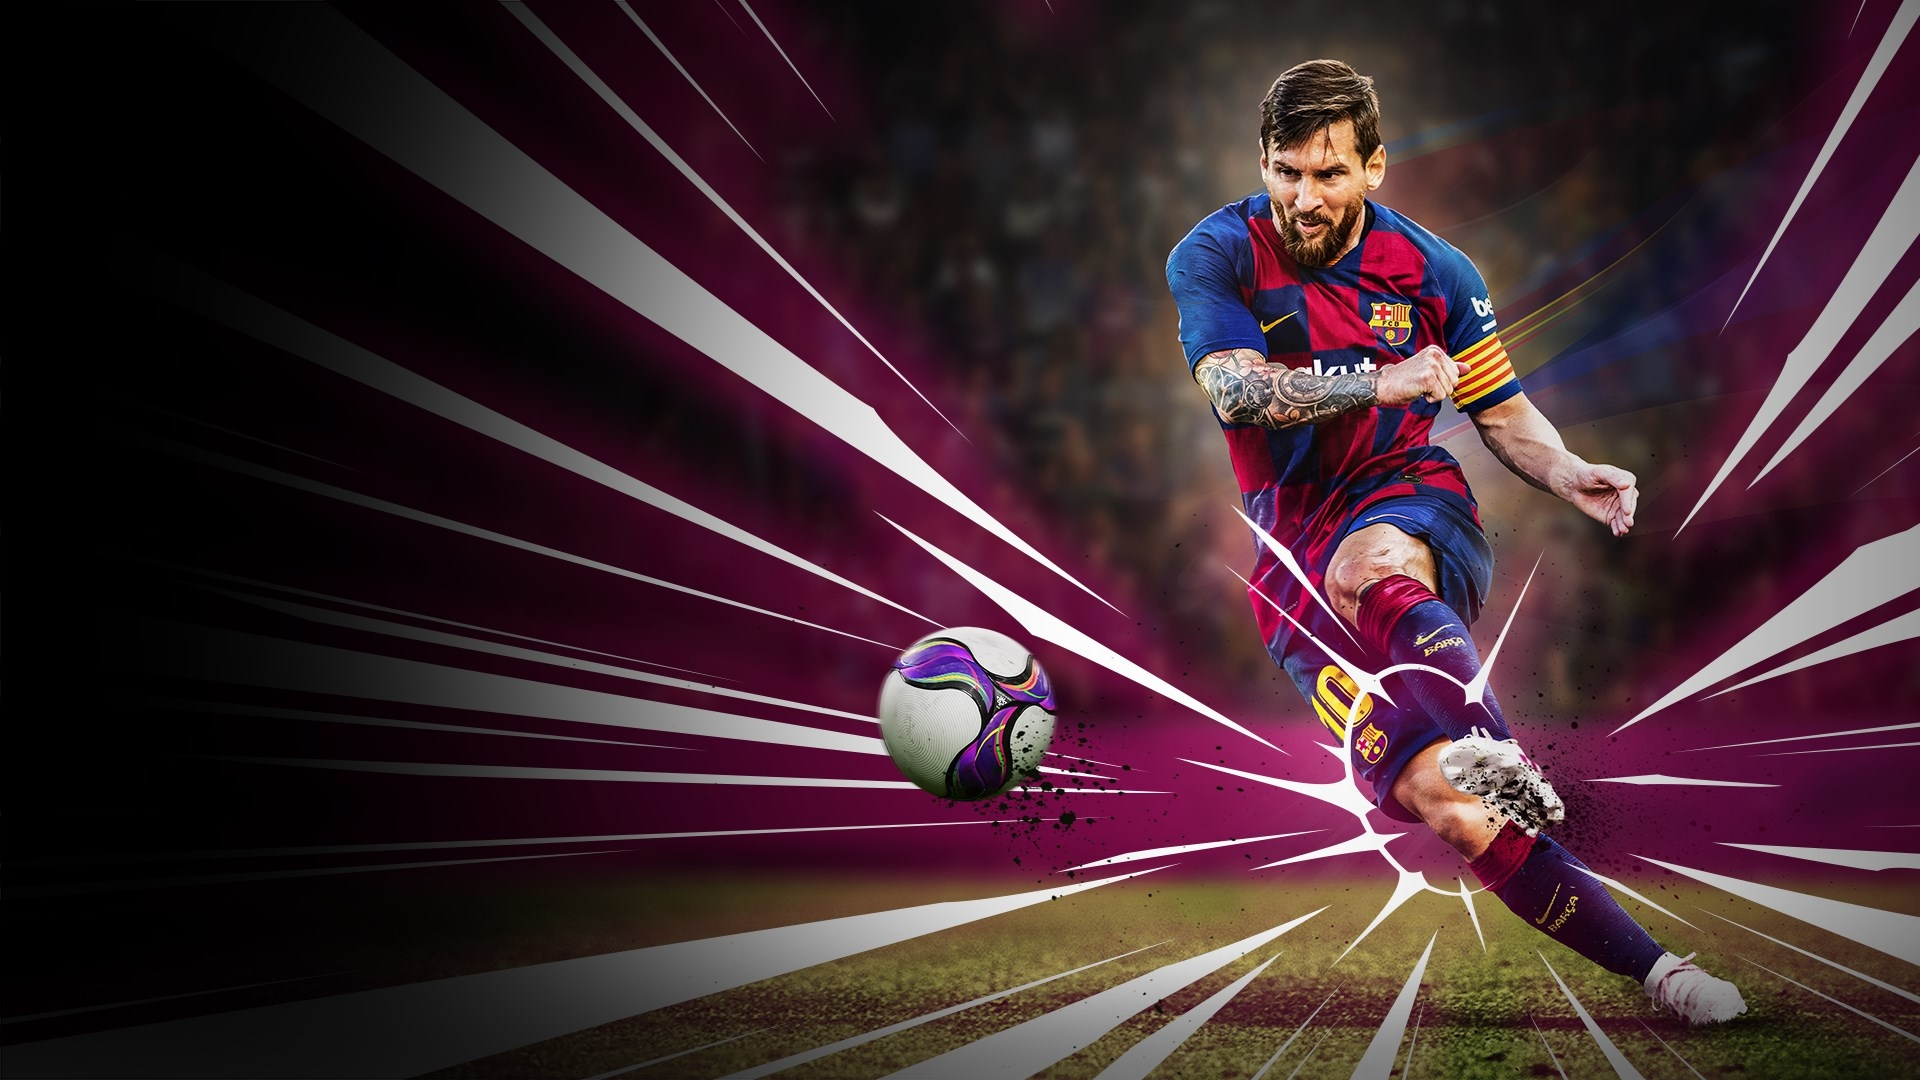 47 Messi 2020 4k Mobile Wallpapers On Wallpapersafari